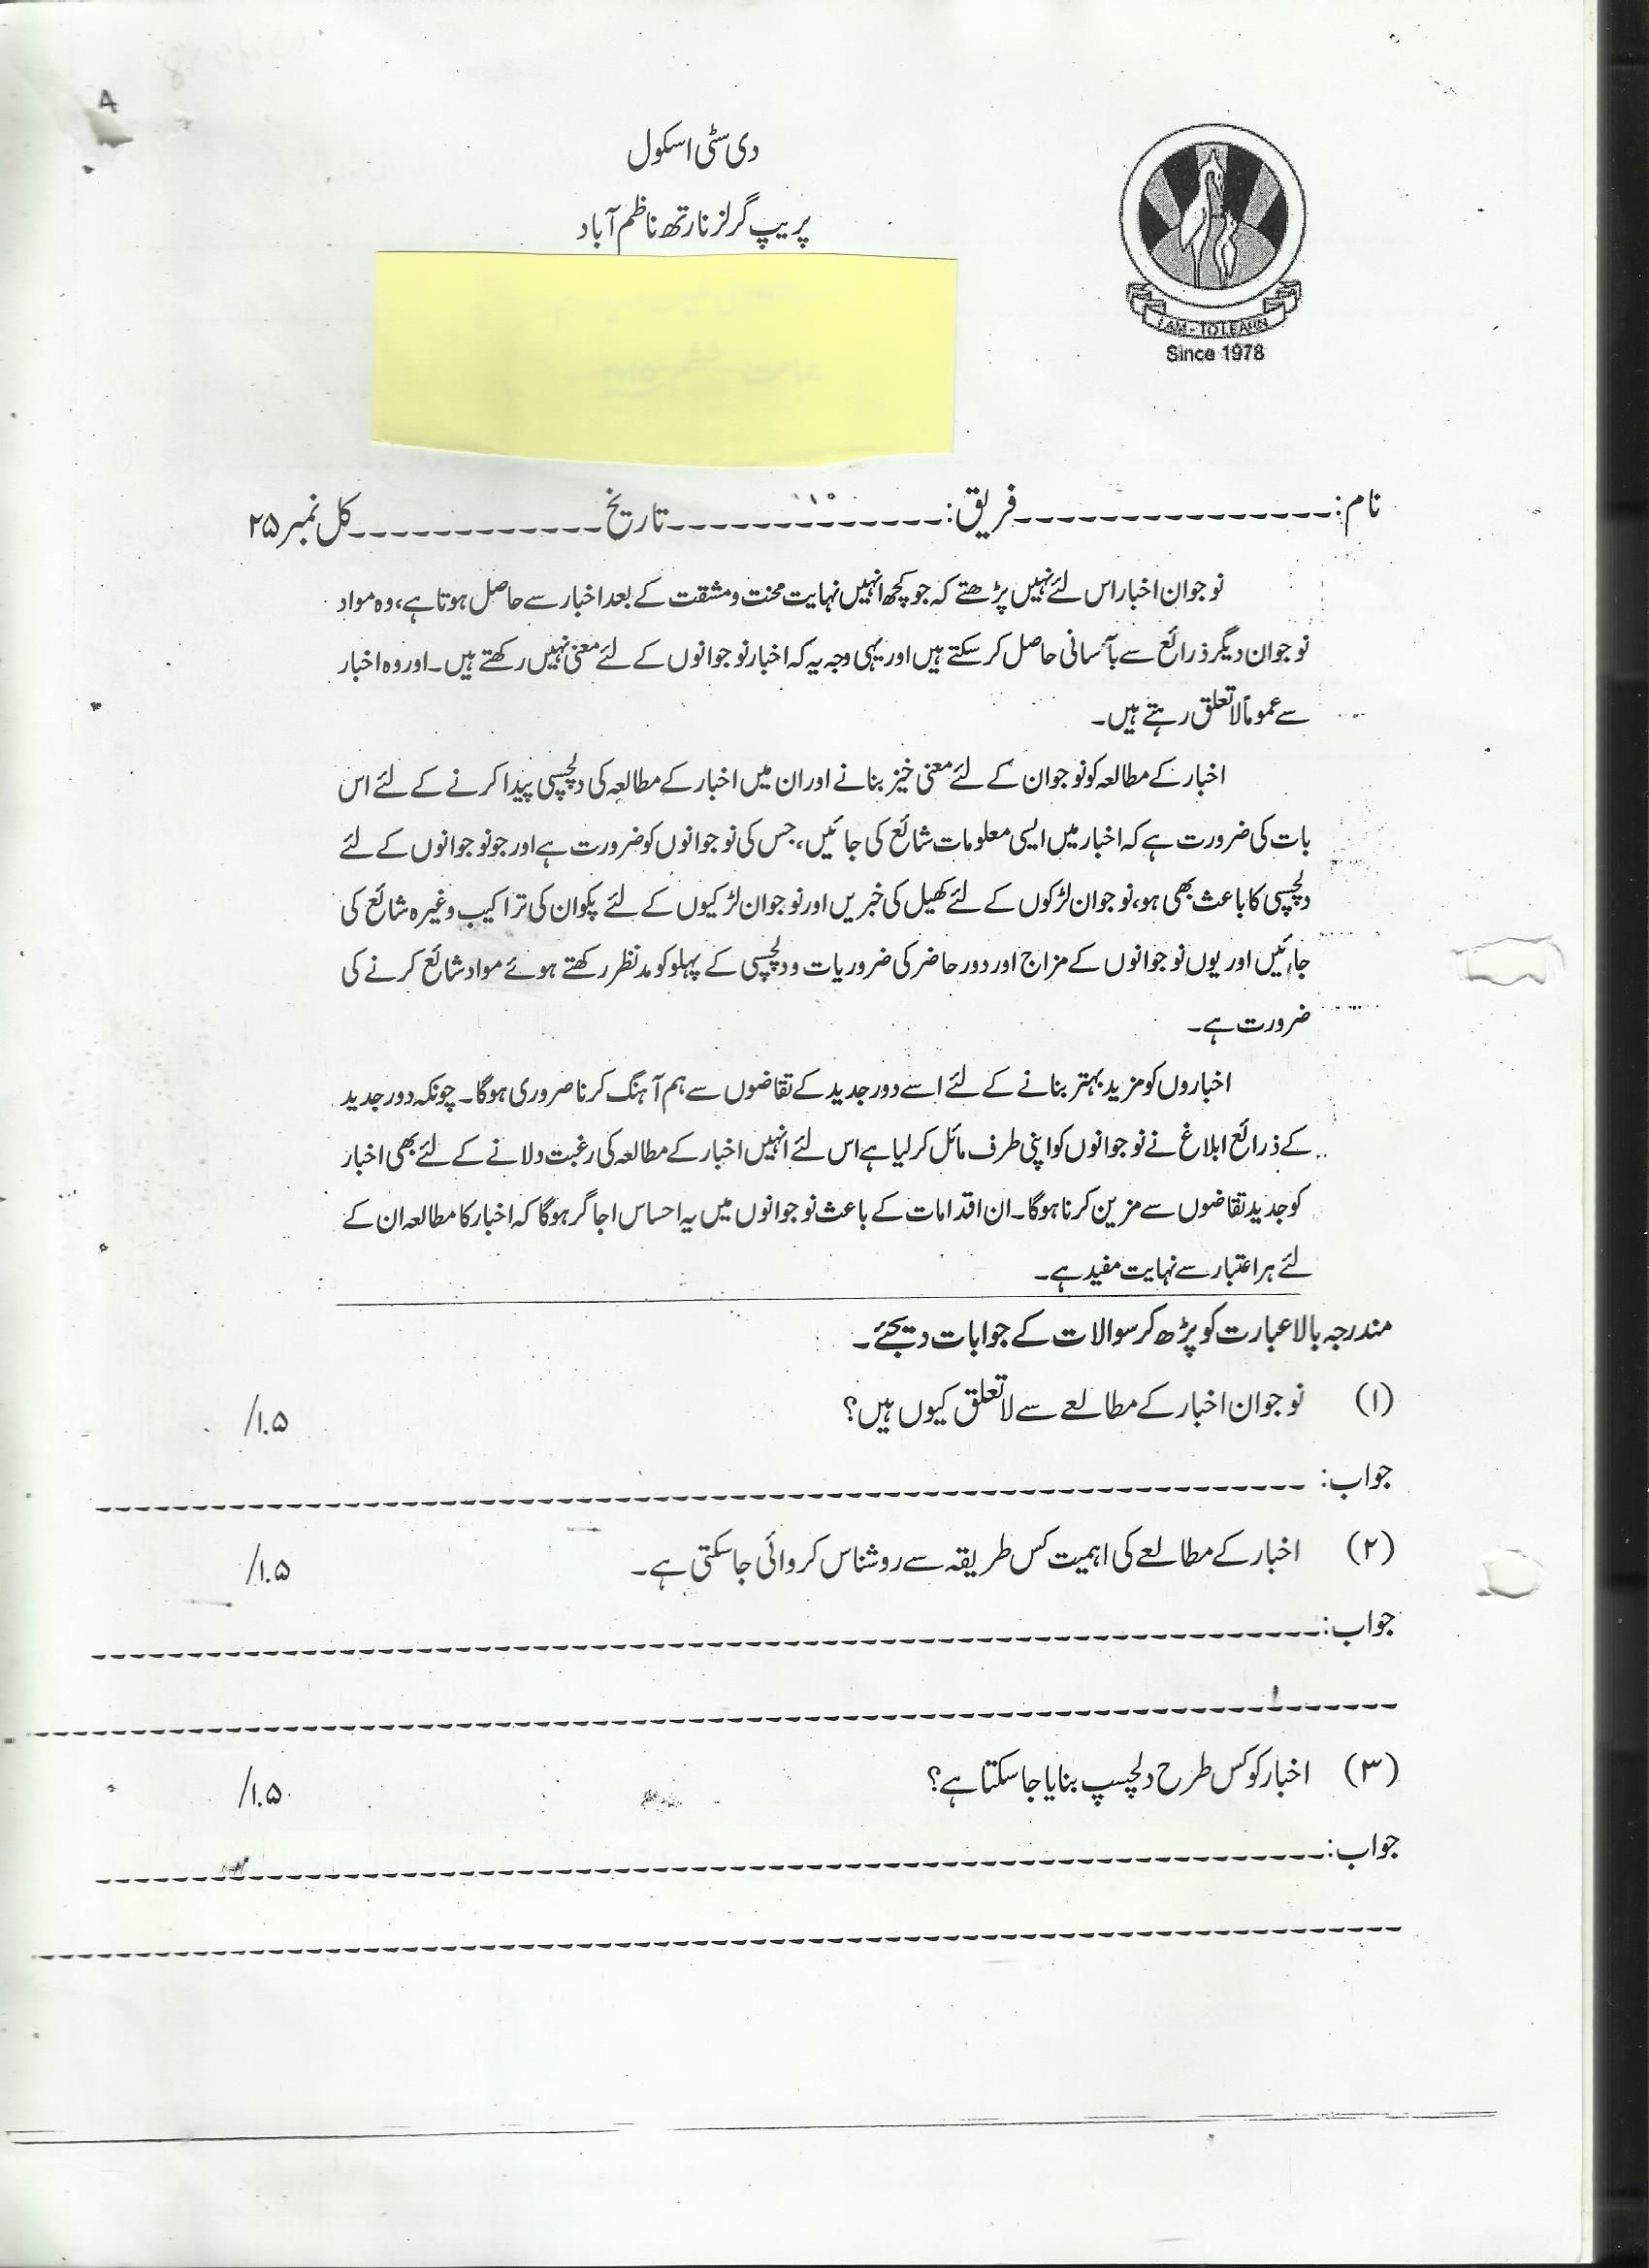 hight resolution of Urdu Tafheem Worksheets For Grade 4 #401902 - Worksheets Library on Best  Worksheets Collection 7730